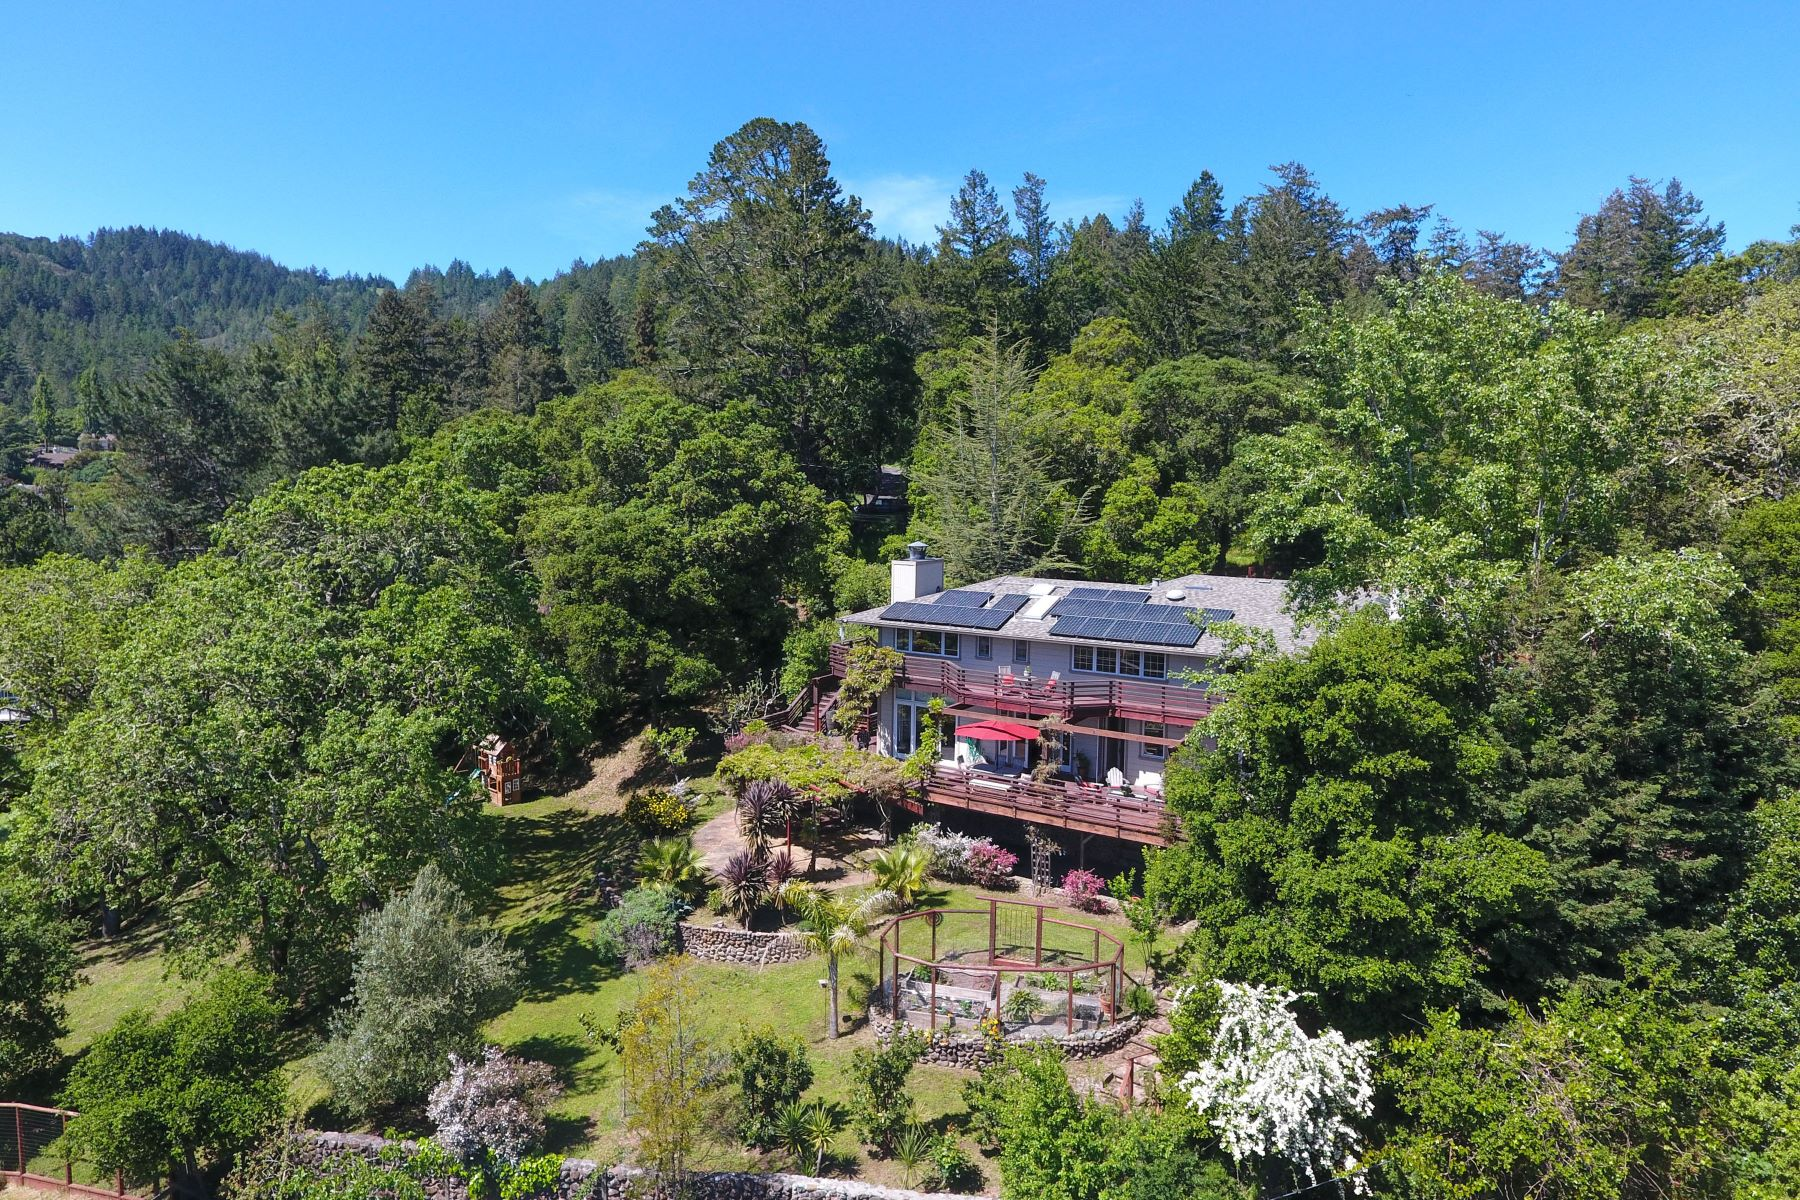 Single Family Home for Sale at Country Estate Living at its Finest 17 Madrone Ave Woodacre, California 94973 United States